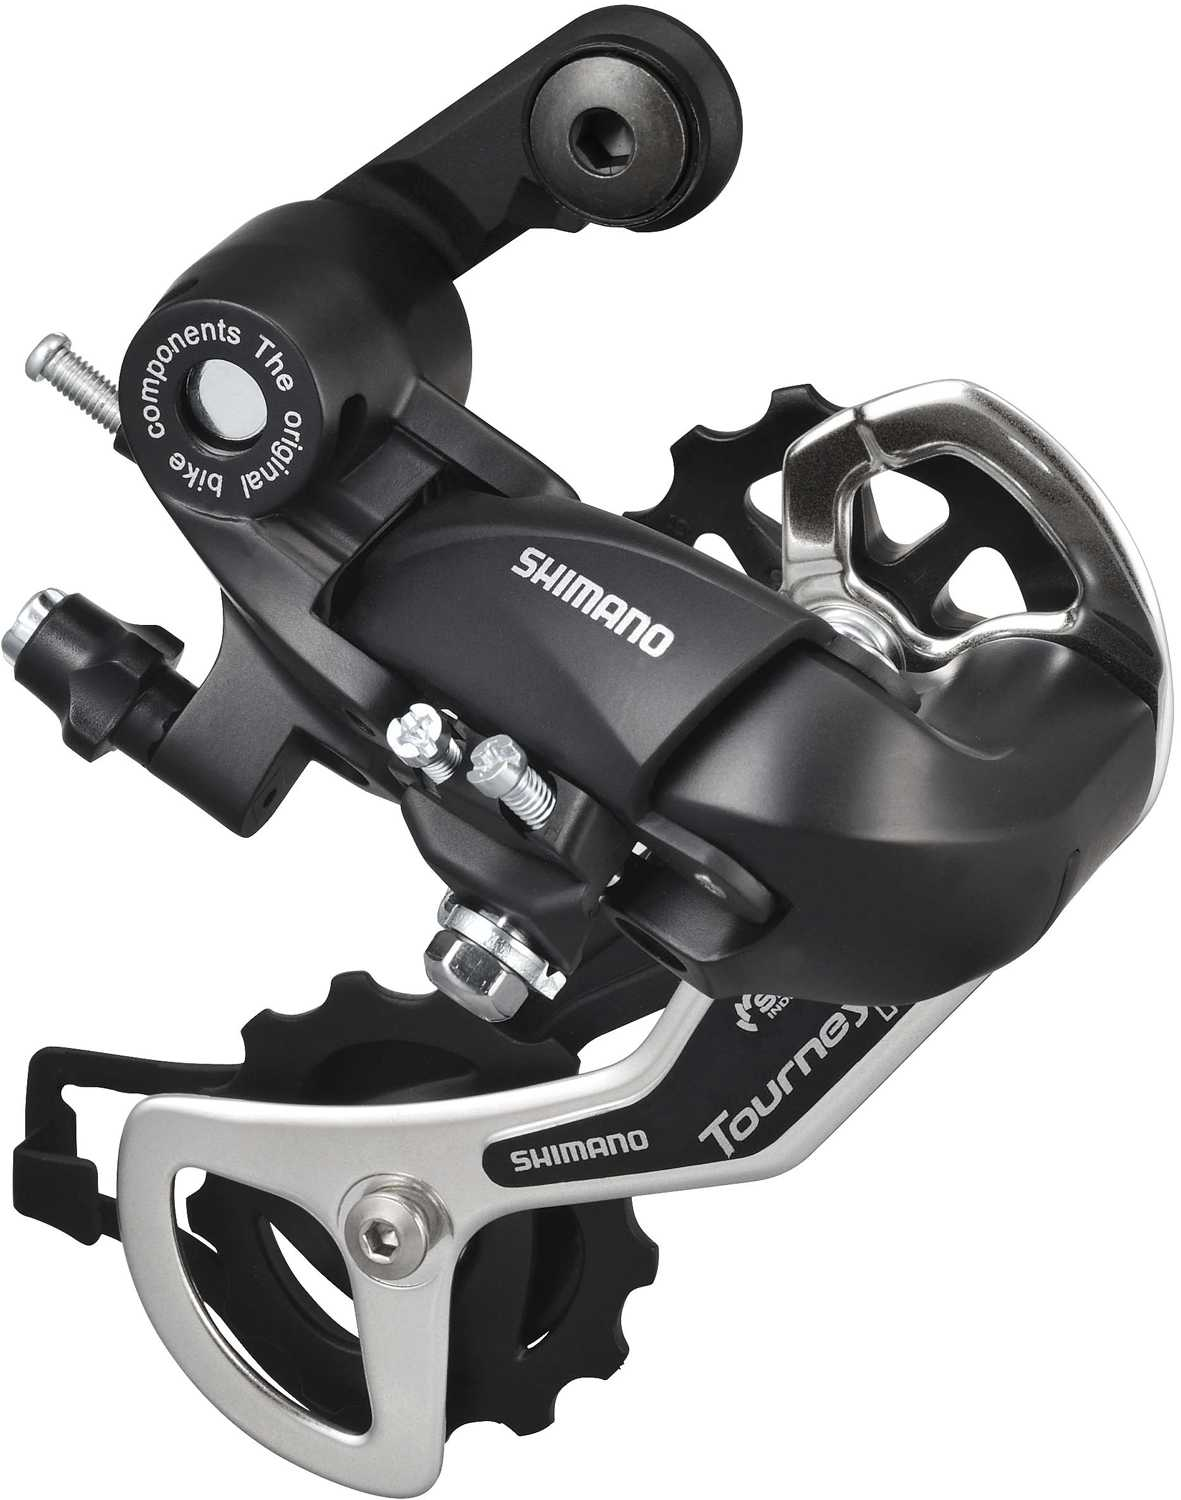 Shimano Tourney TY300 6/7 Speed Rear Derailleur SGS Direct Fit - Black